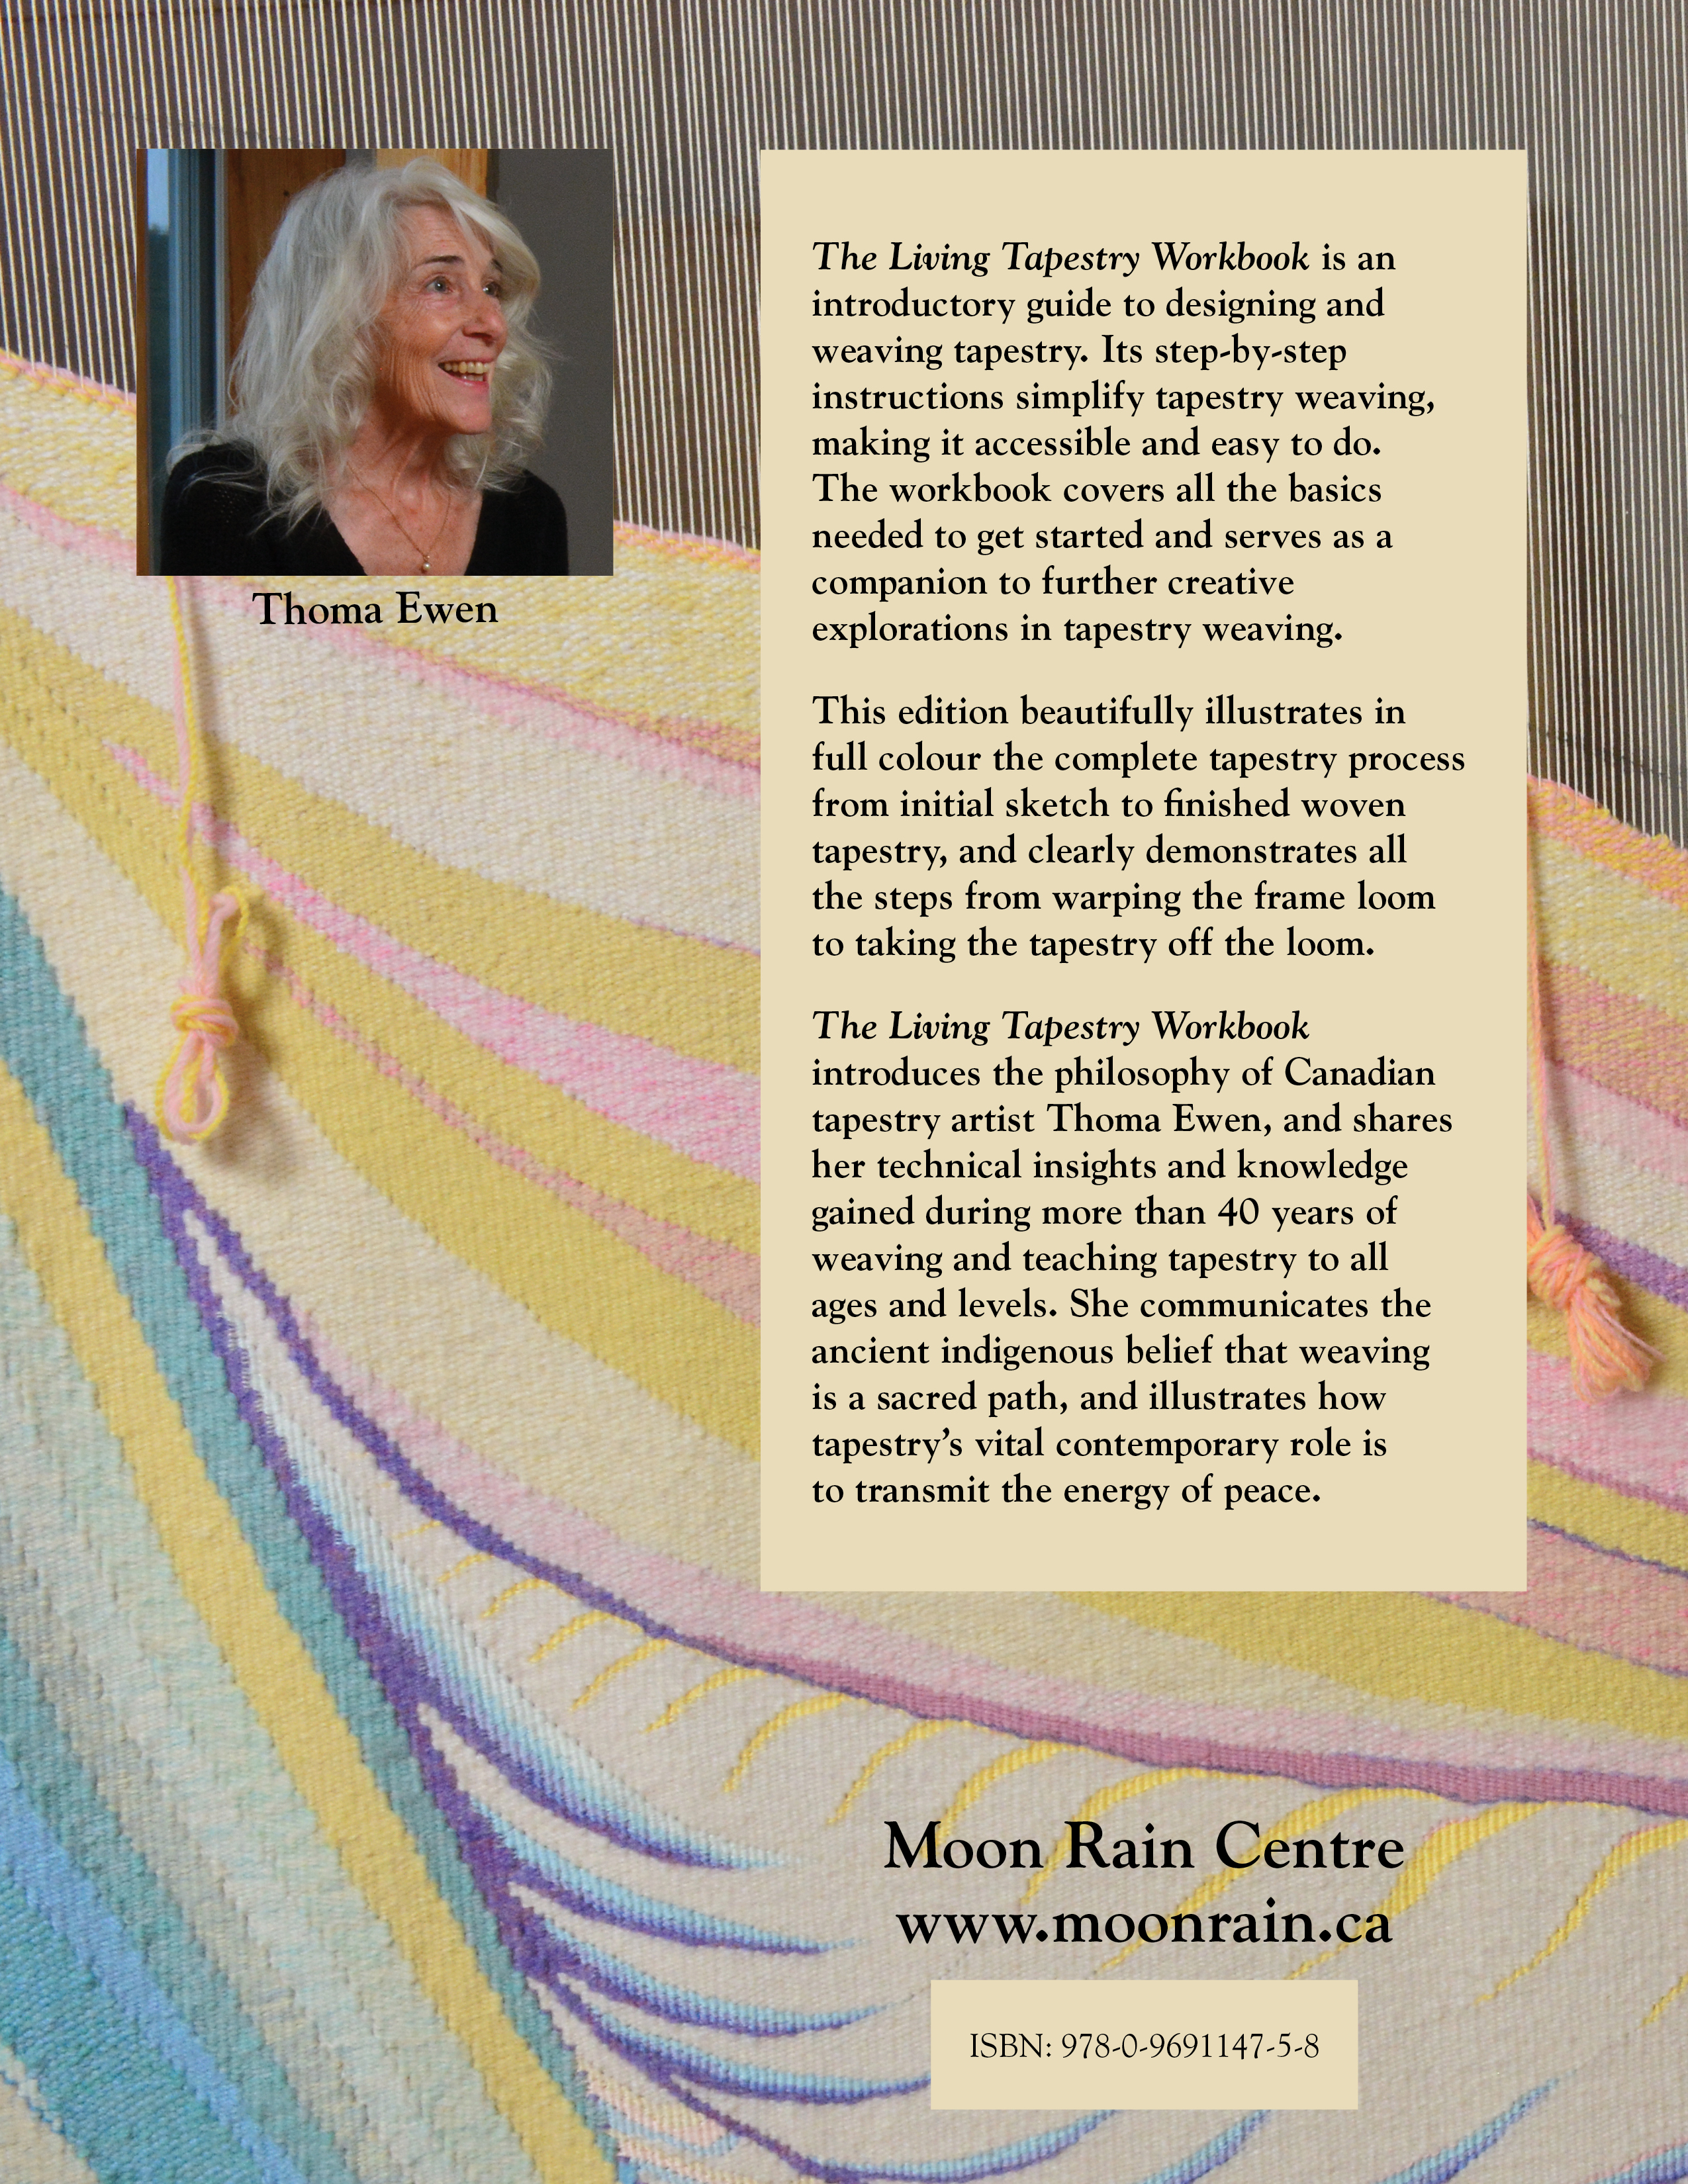 The Living Tapestry Workbook